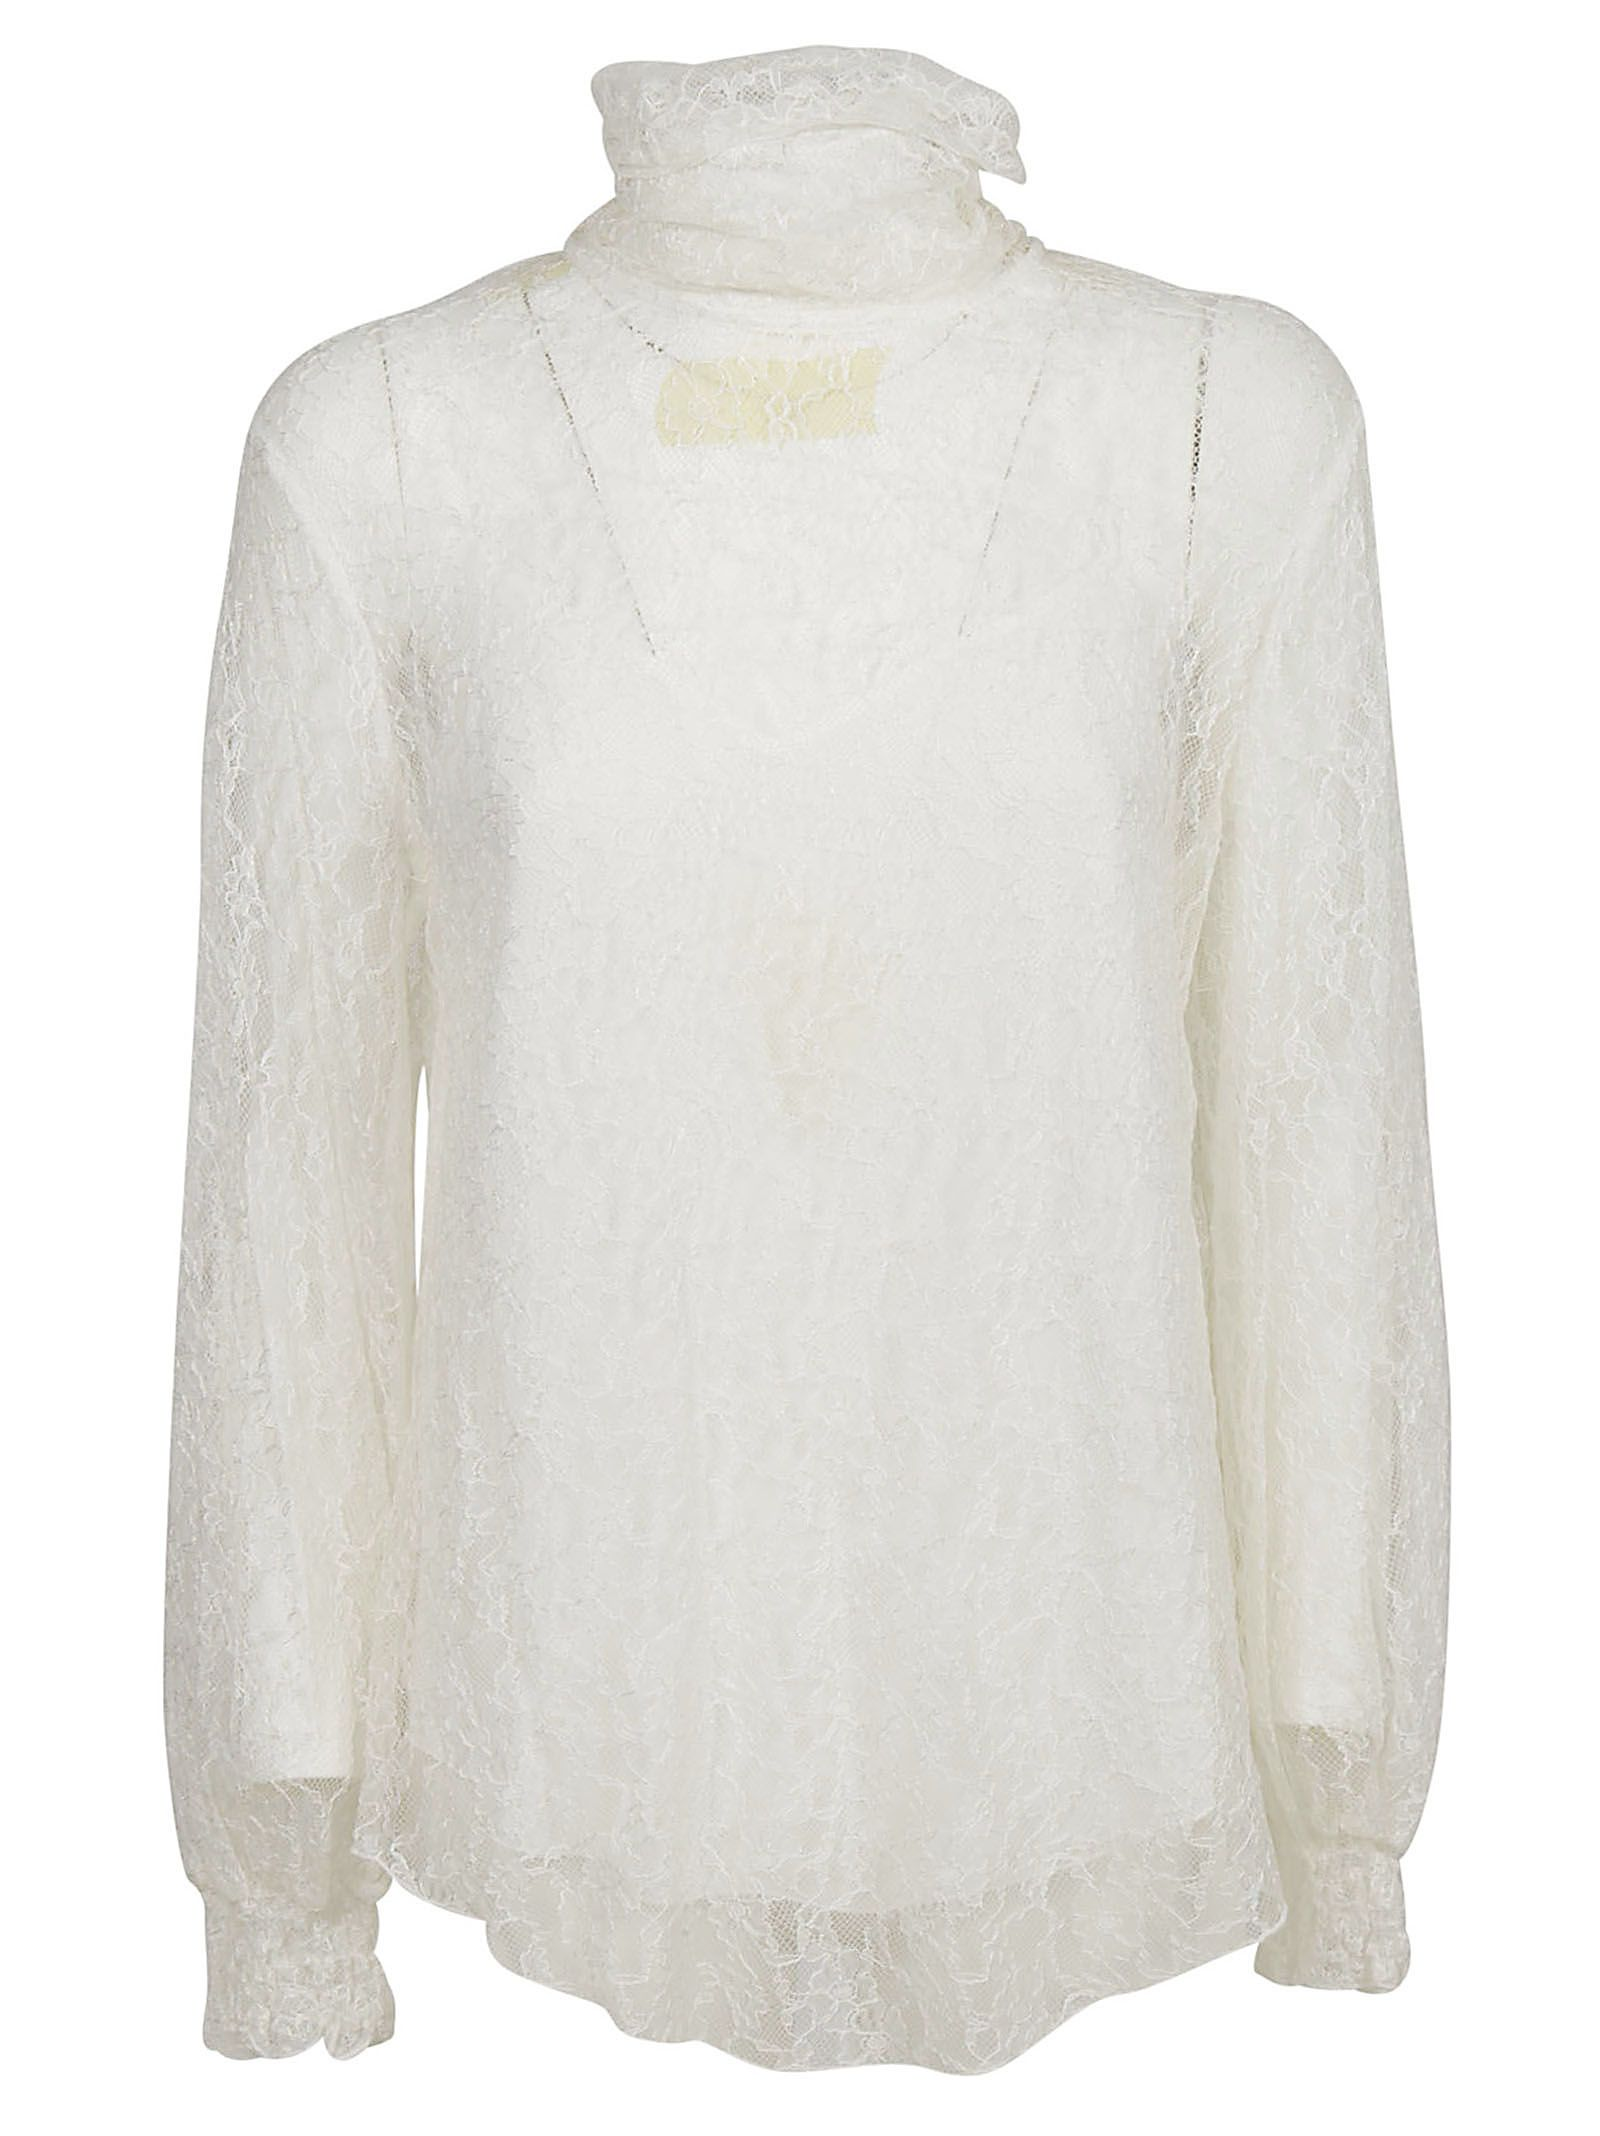 e7436b2e87aa67 See by Chloé See By Chloé Lace Blouse - Bianco - 10801687   italist